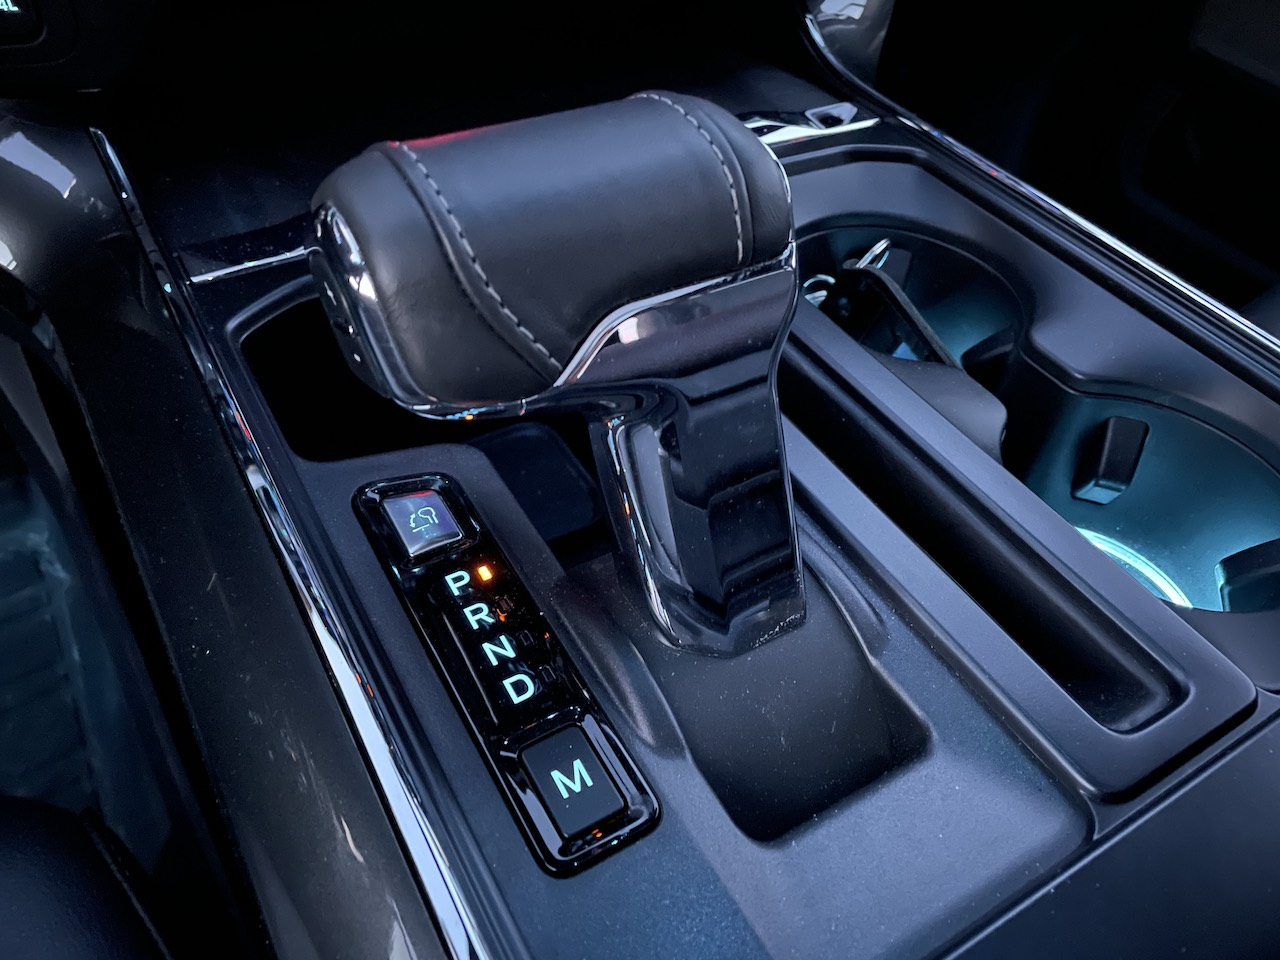 2021 Ford F-150 PowerBoost folding shifter